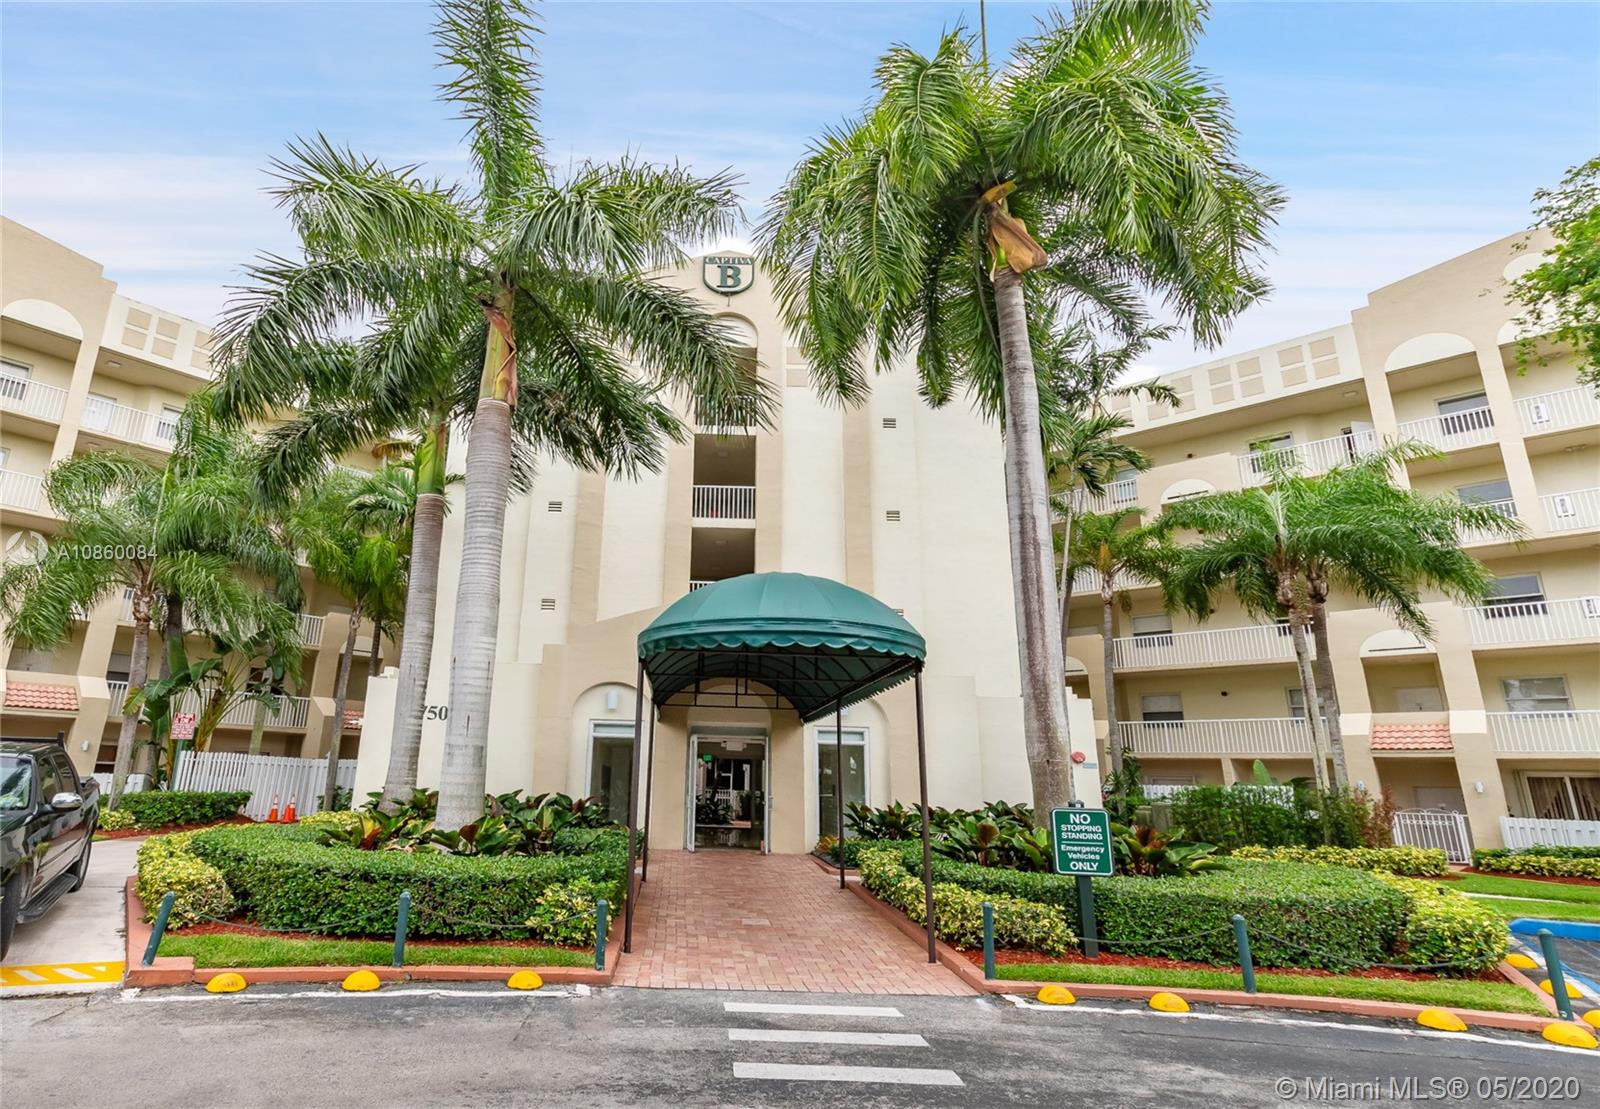 10750 NW 66th St #409 For Sale A10860084, FL